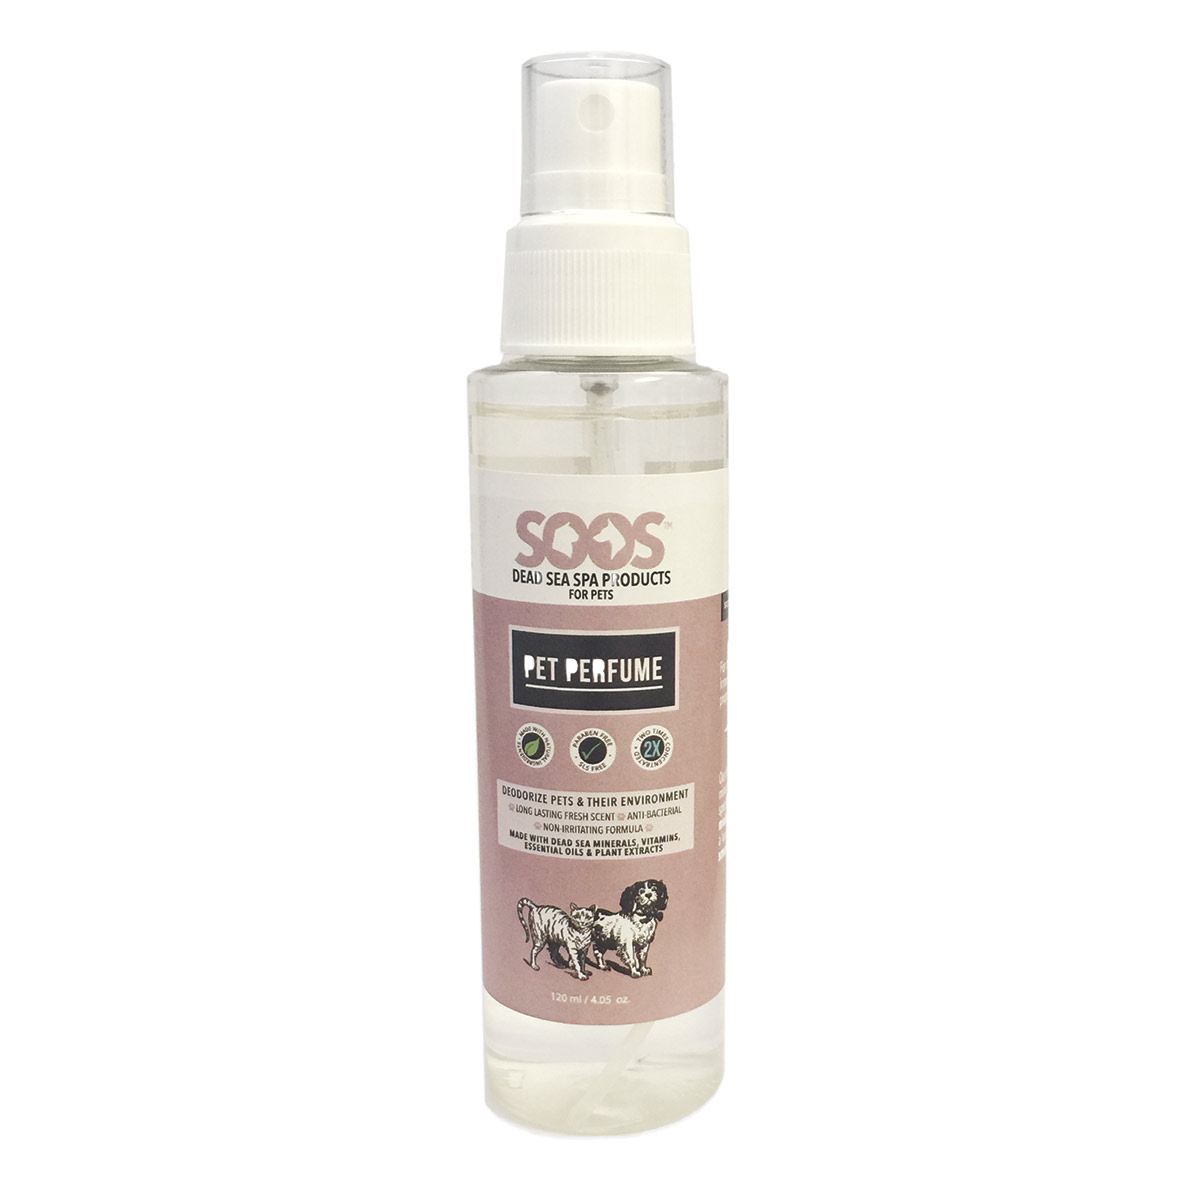 Soos Pet Perfume Cologne Spray for Cats and Dogs 4 oz